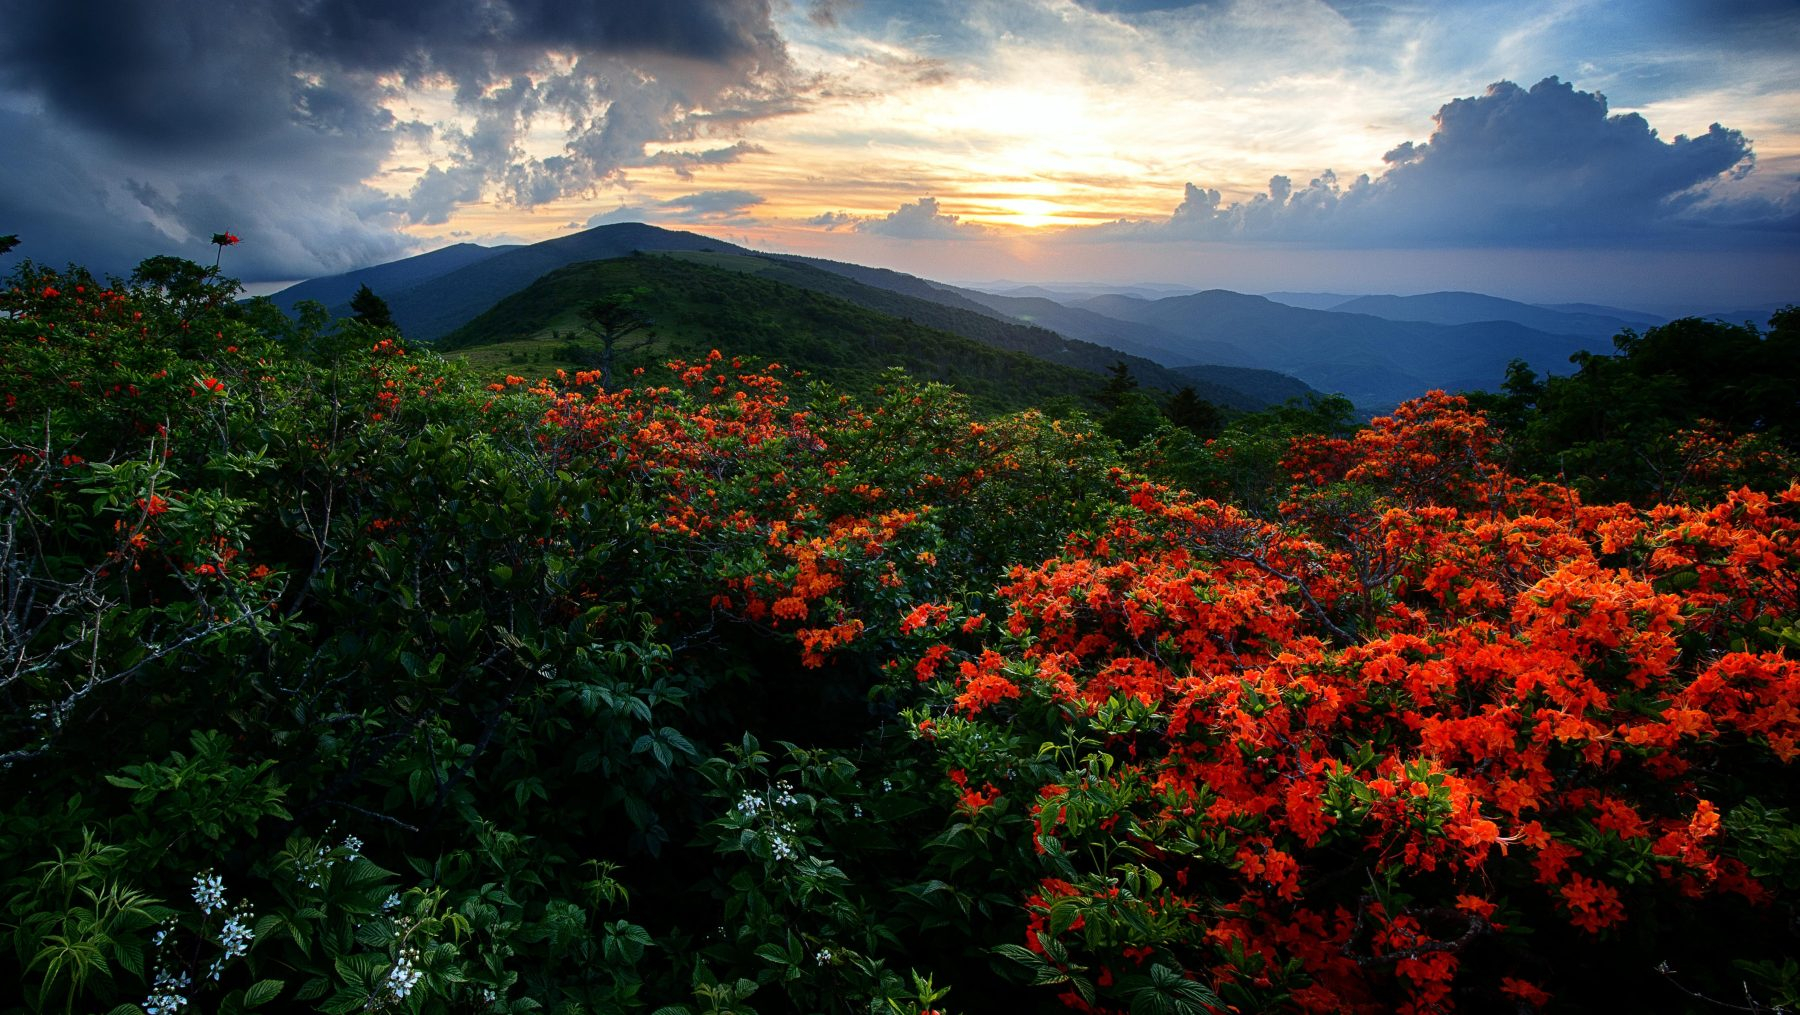 Flame Azaleas along the Appalachian trail at sunset at Roan Highlands on the Tennessee-North Carolina border. (Getty Images)